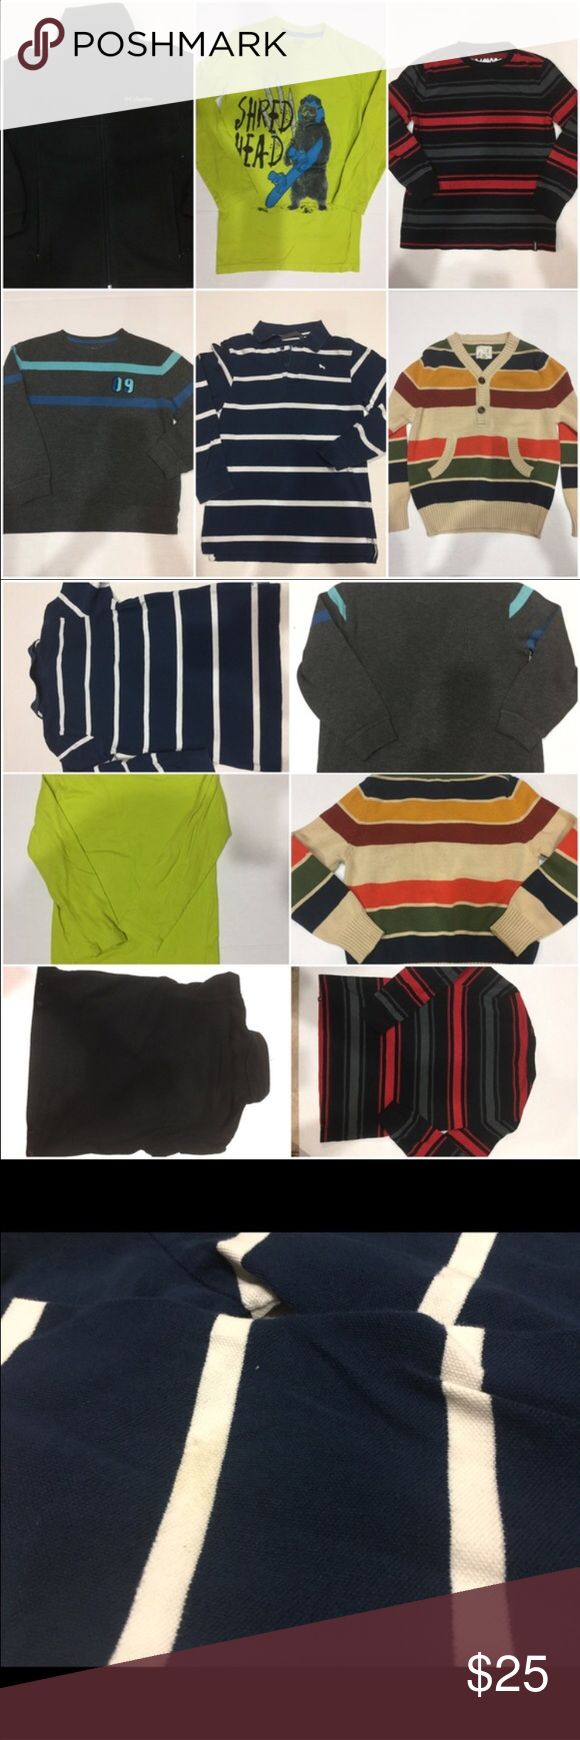 💙Size 8 Boys long sleeve shirt lot. (6 pieces) Peek multicolor sweater, Old Navy sweater (09 on it), red/black Tony Hawke sweater shirt, Falls Creek Shred Head snowboarding bear, Colombia black fleece jacket, and H & M navy striped polo.  All gently pre owned, normal wash and wear.  The H &M has a small mark on the sleeve as shown in last picture. Shirts & Tops